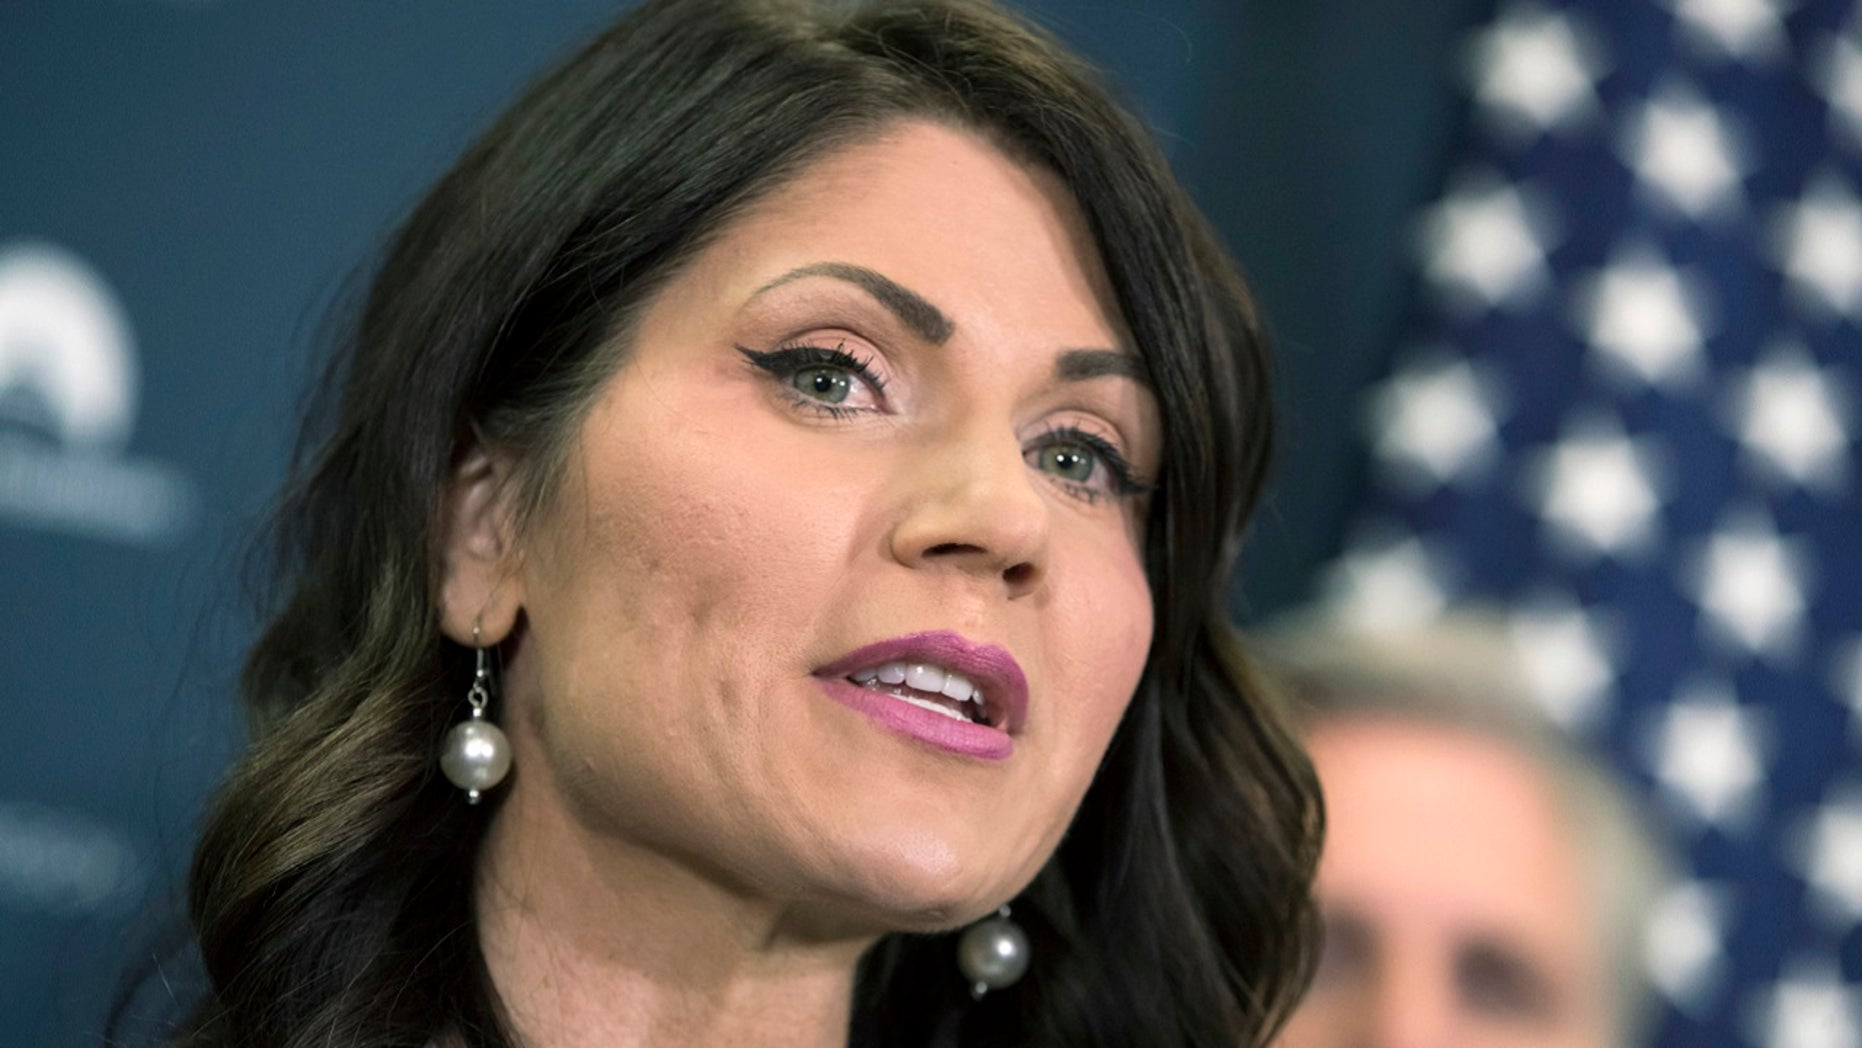 Rep. Kristi Noem, R-S.D., and South Dakota gubernatorial candidate, speaks on Capitol Hill in Washington, Dec. 5, 2017. Noem and state Attorney General Marty Jackley are competing for the Republican nomination for governor in the June 5, 2018, primary.